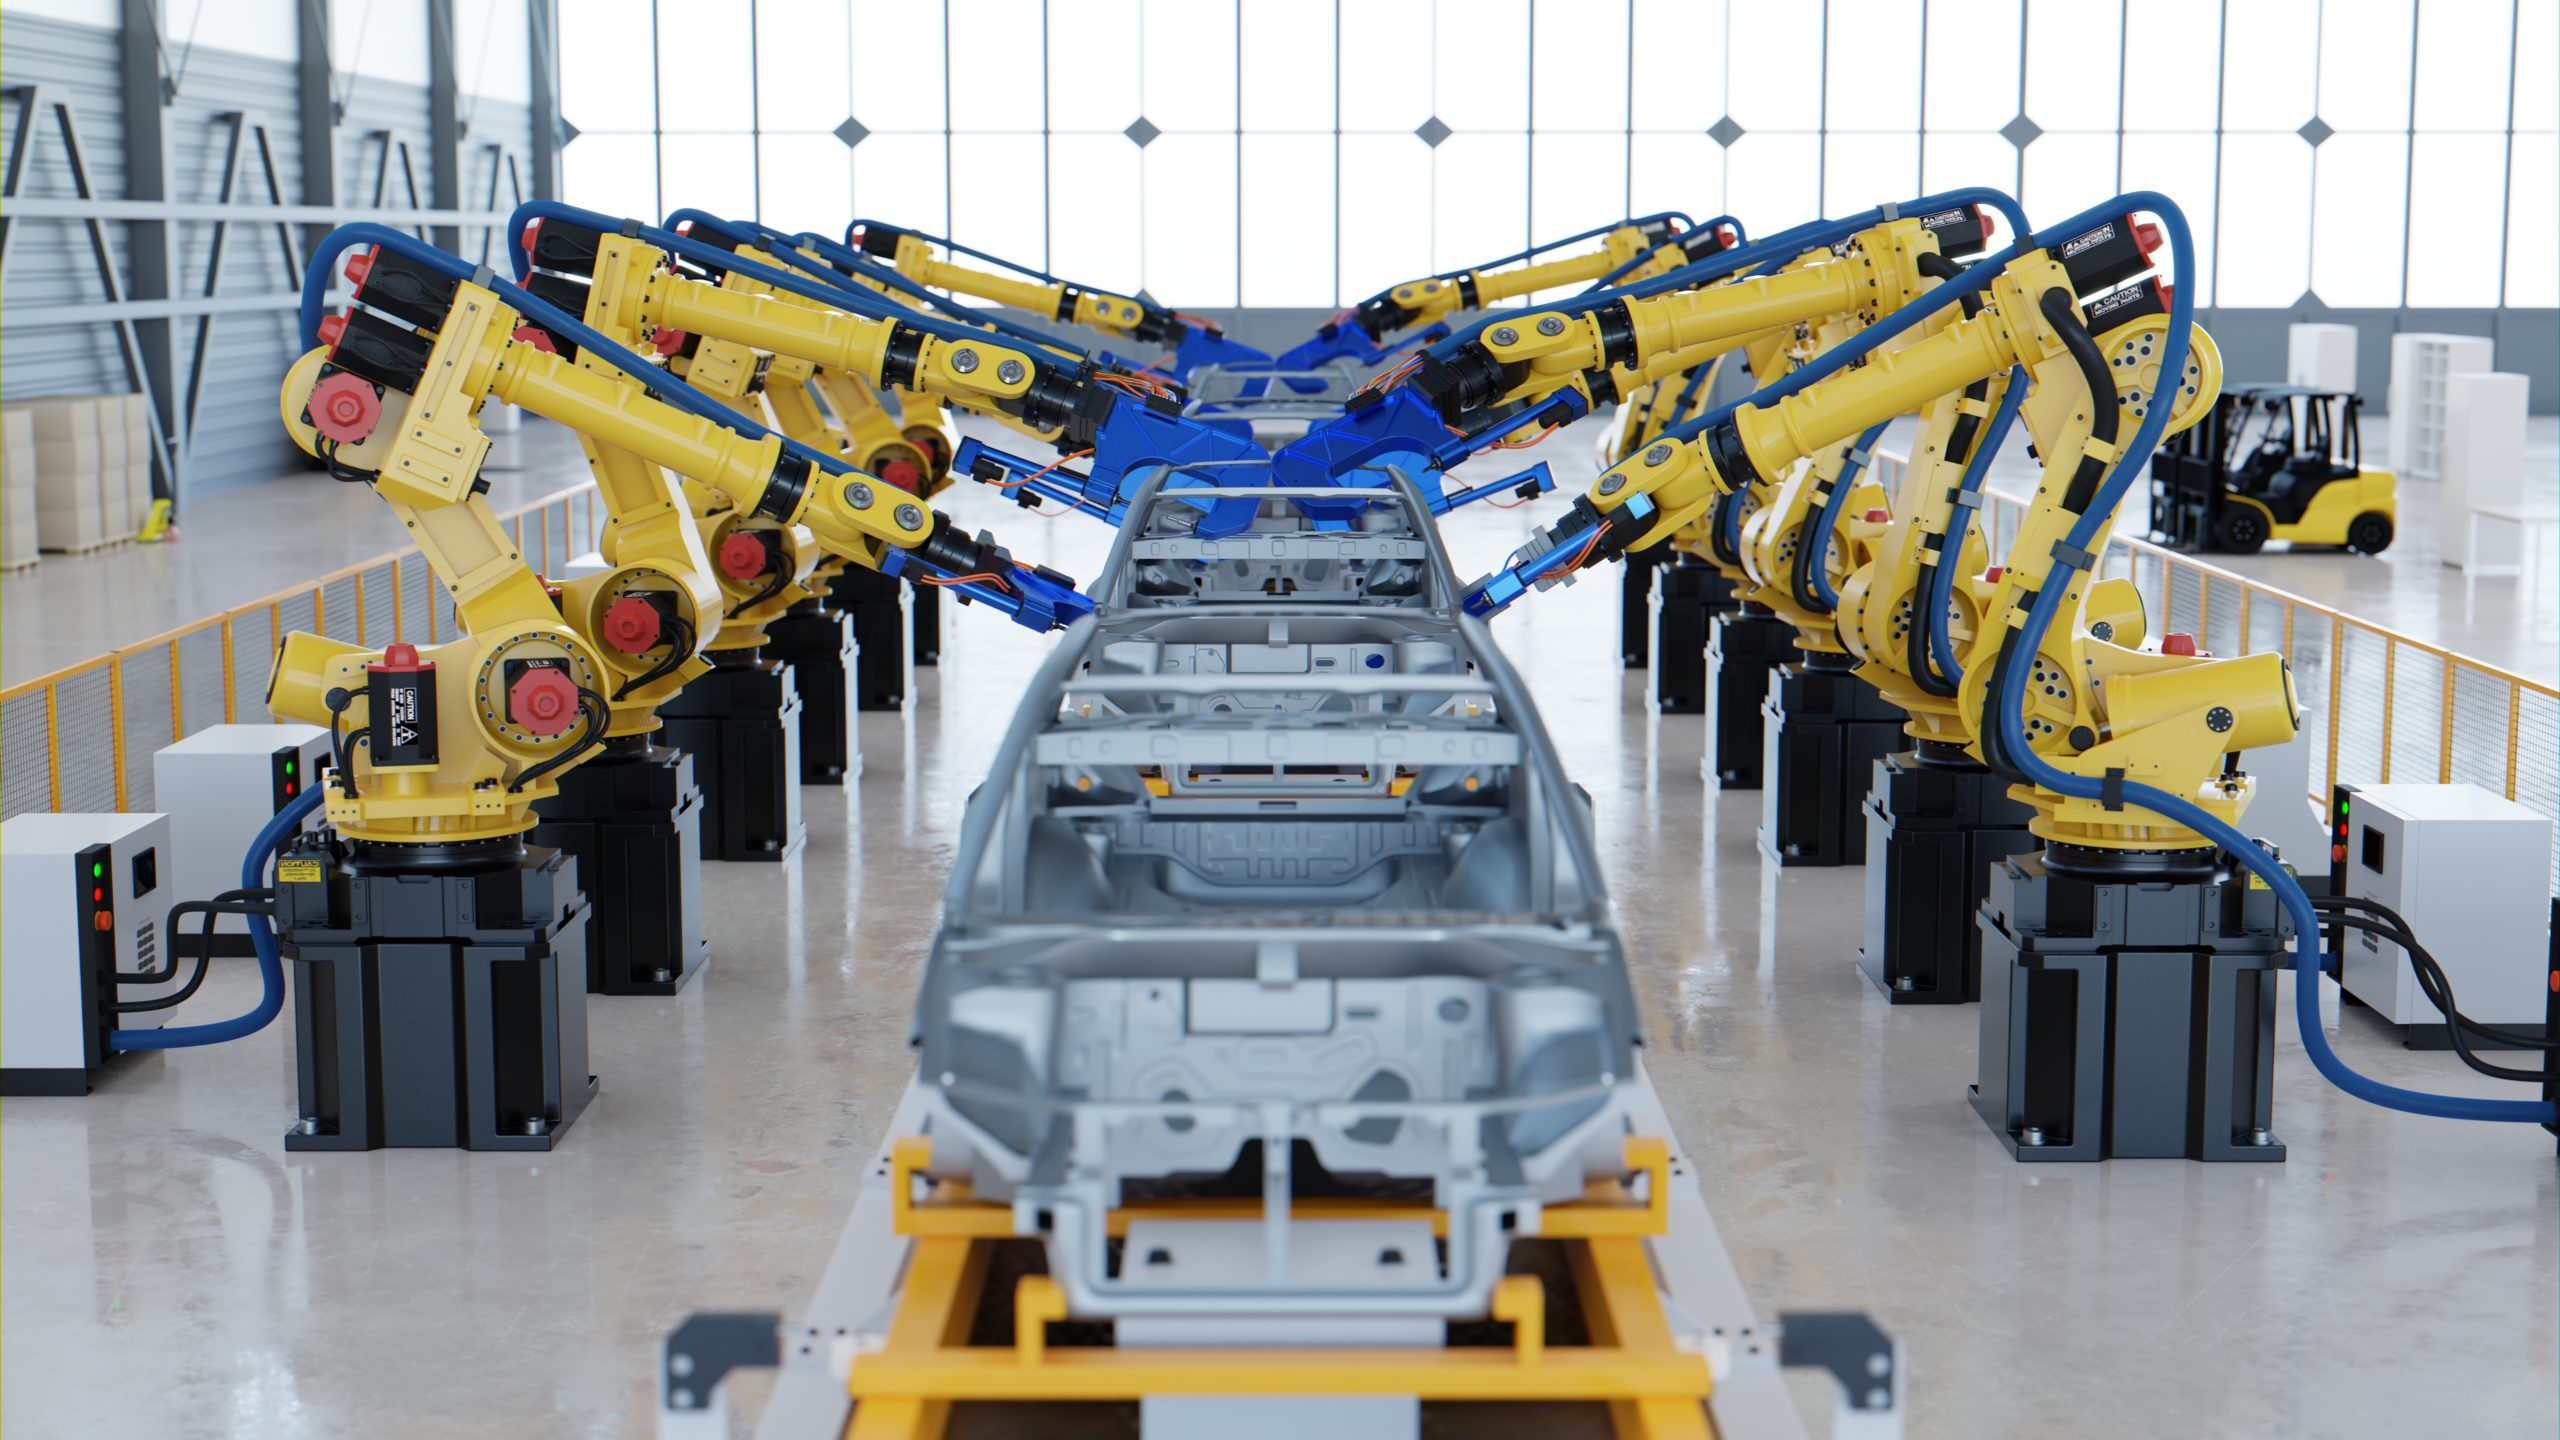 Robotic automotive assembly in factory.